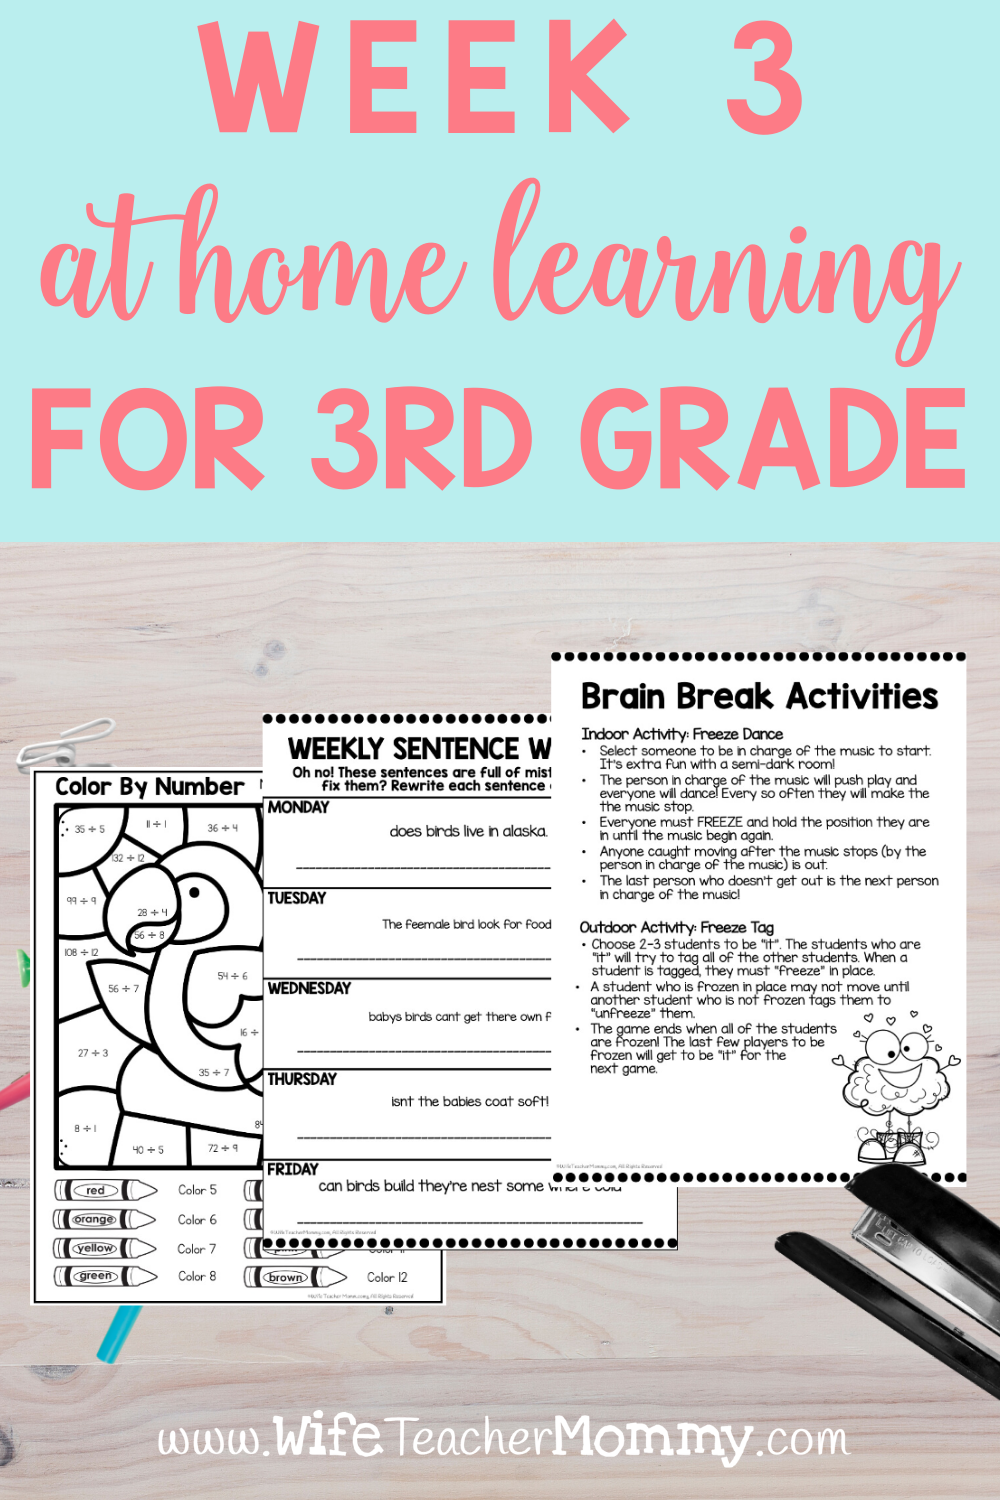 3rd Grade Distance Learning Packet At Home Learning Activities Week 3 Wife Teacher Mommy Distance Learning Math Lesson Plans Homeschool Lesson [ 1500 x 1000 Pixel ]